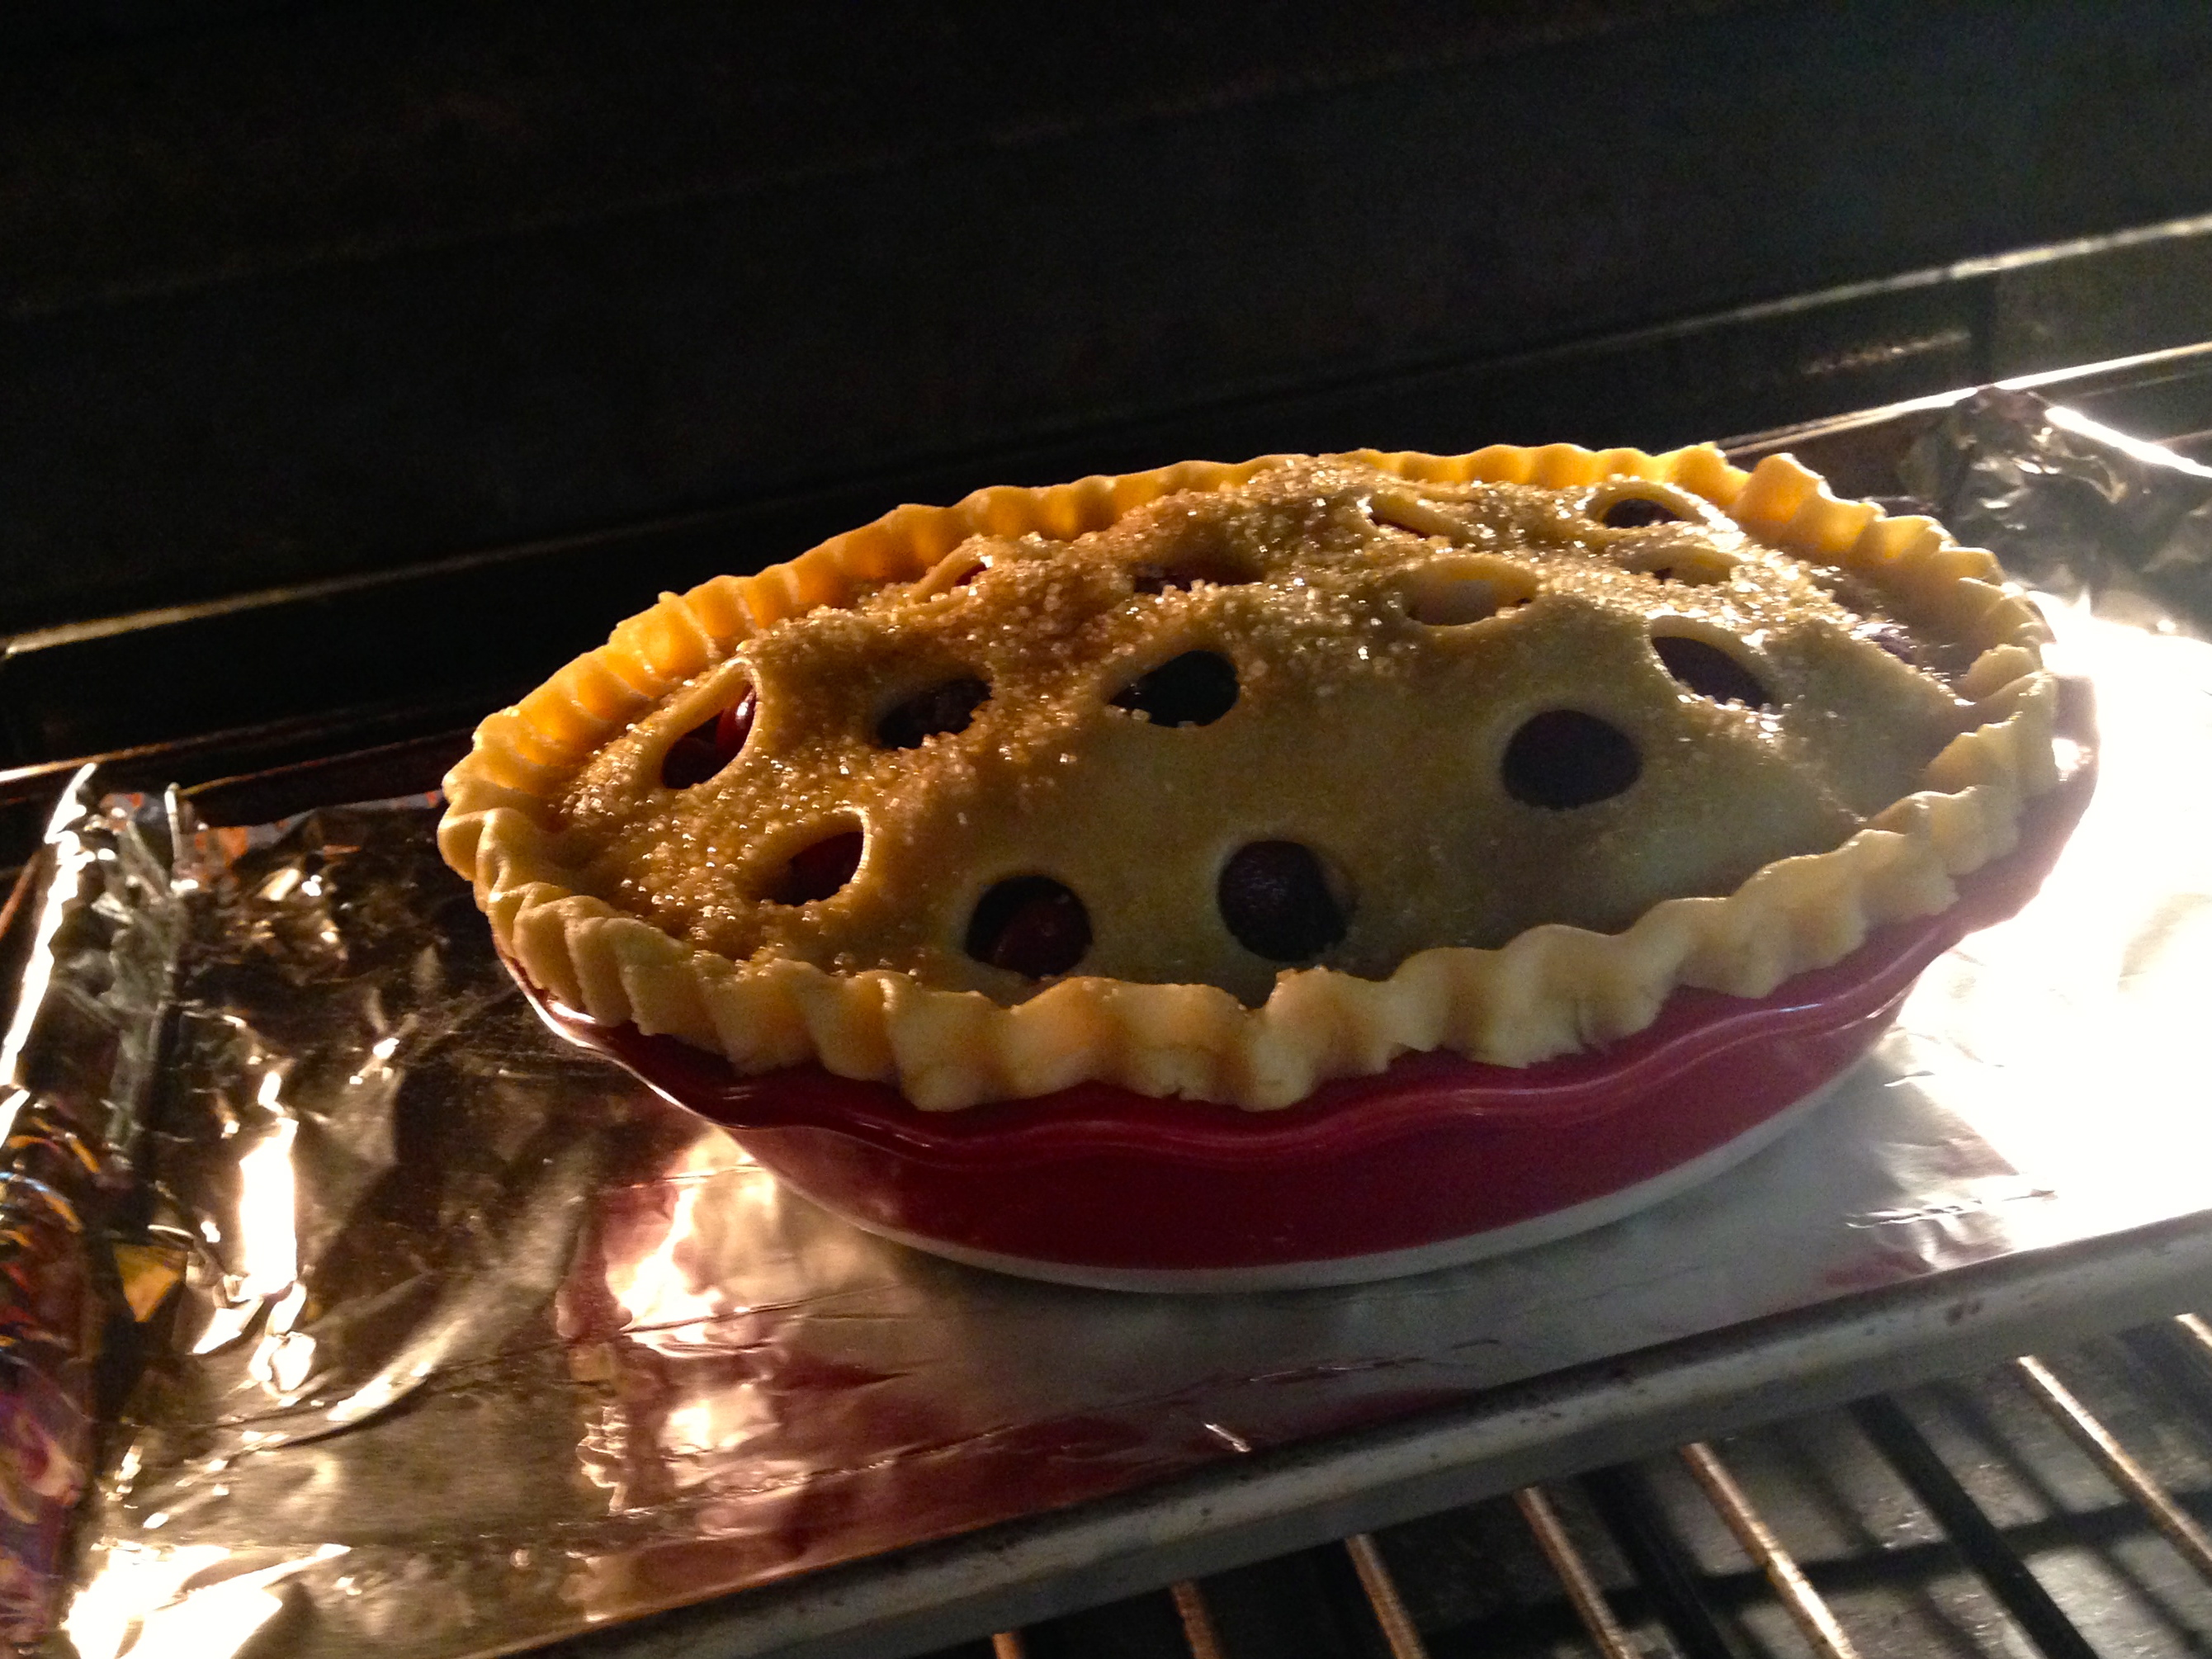 Continue baking for 50 to 60 minutes; cover with a foil tent if crust is browning too quickly. The pie is done when the crust is golden brown and juices are ... & american pie u2013 passioneats